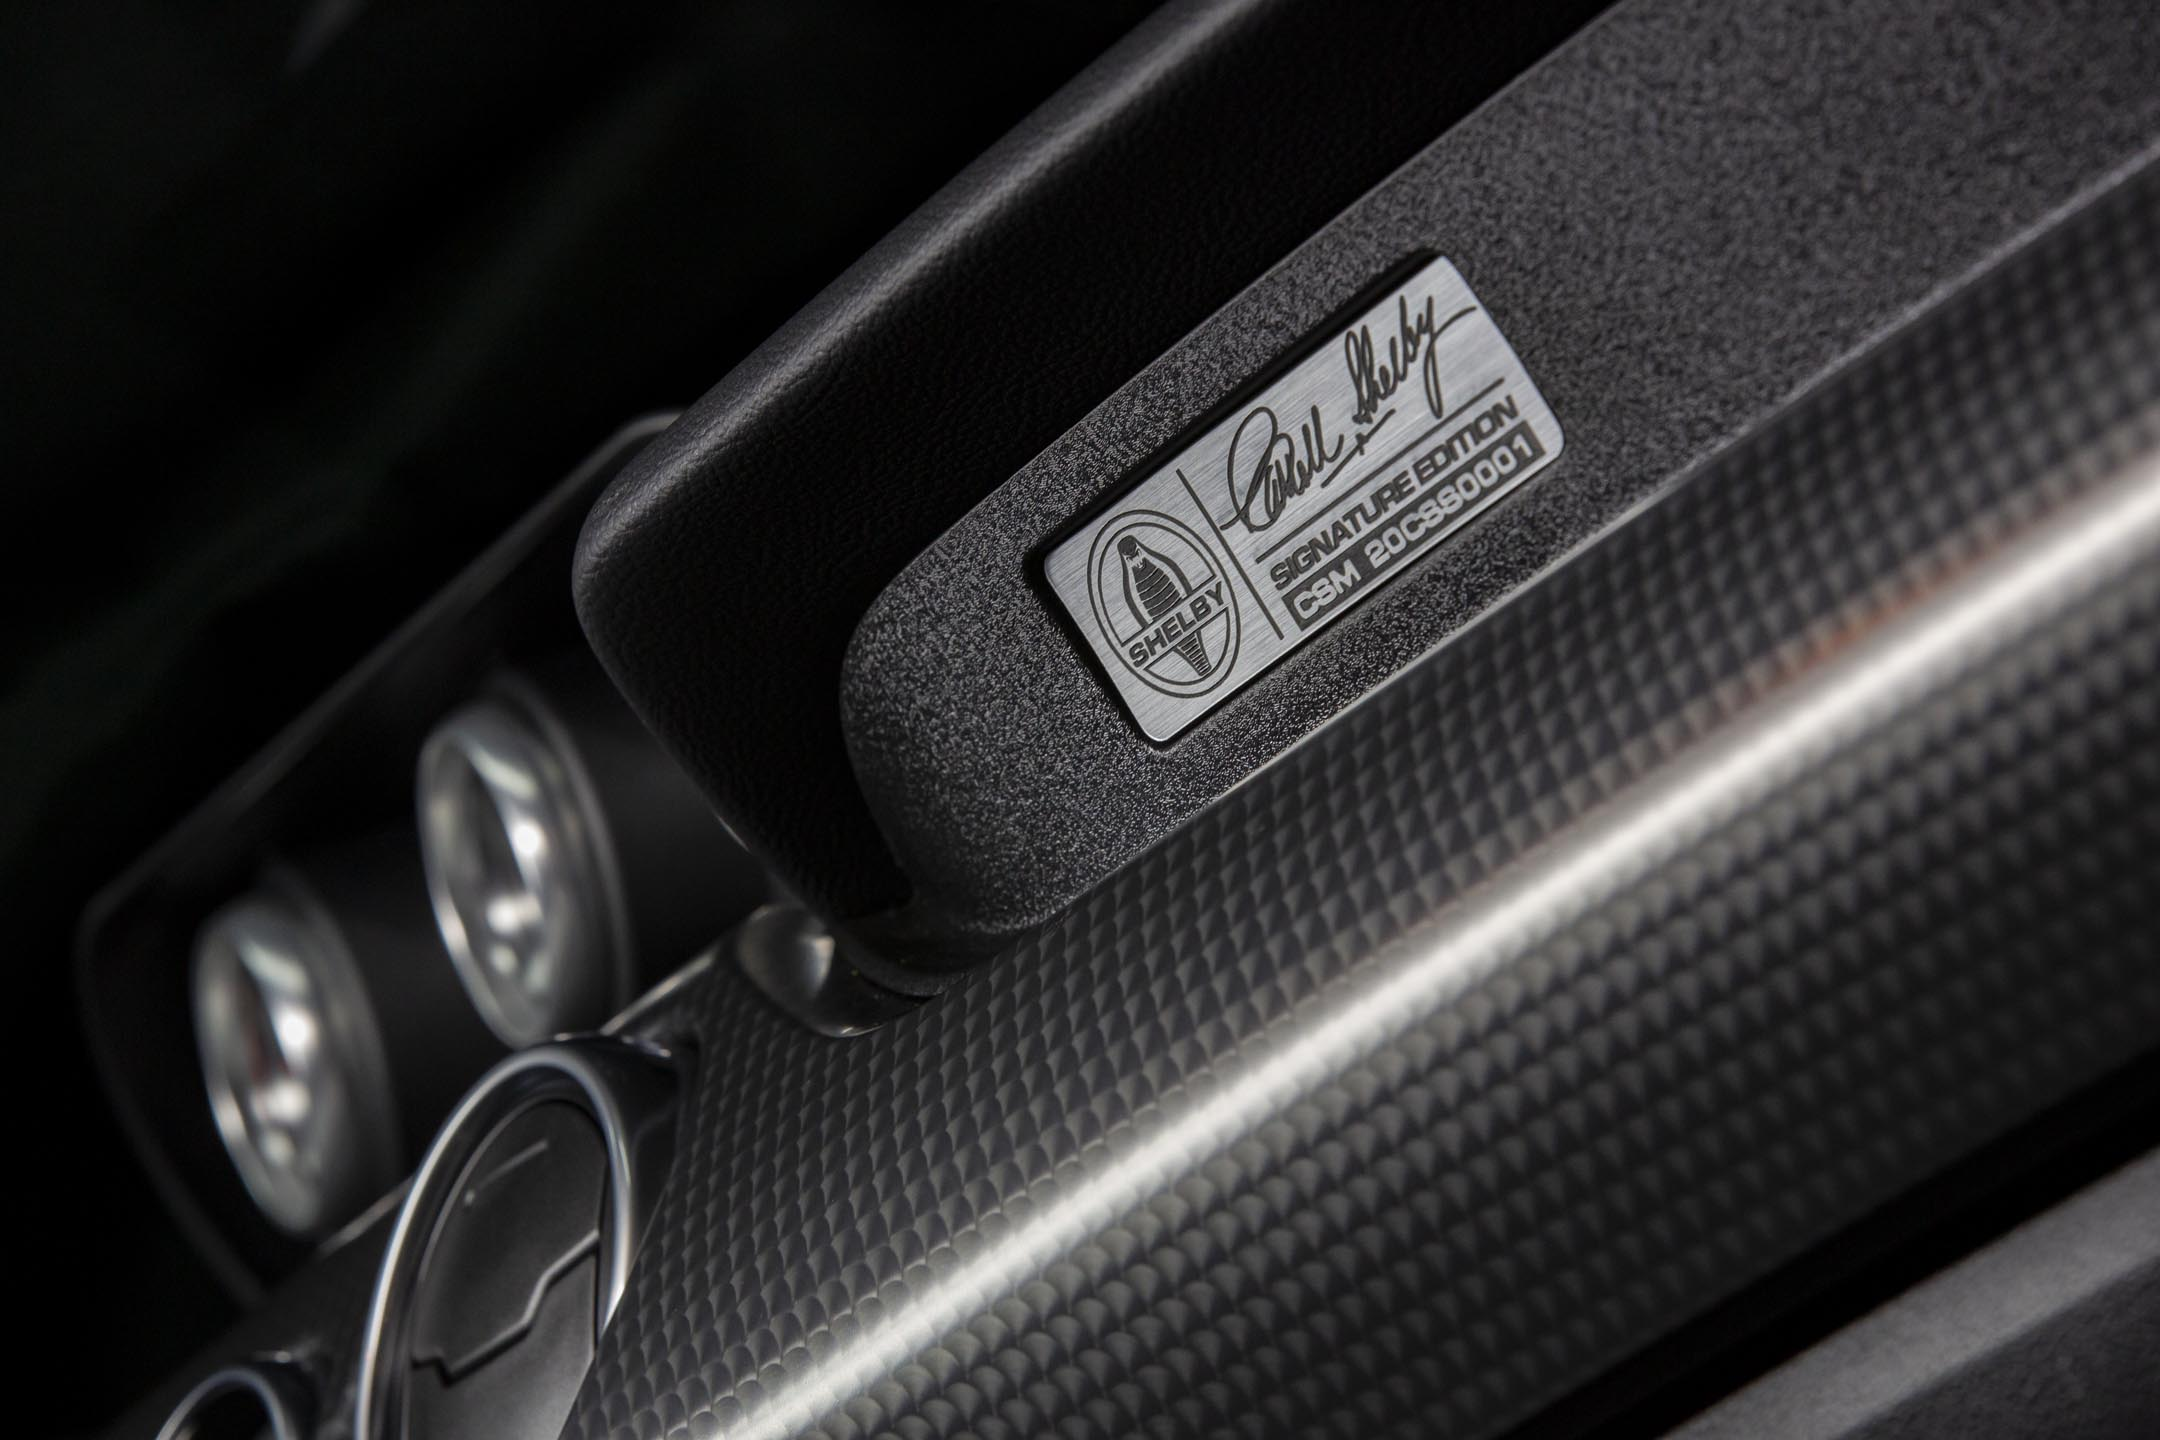 Ford Mustang Carroll Shelby Signature Series - 2020 - interior / intérieur - model signature edition